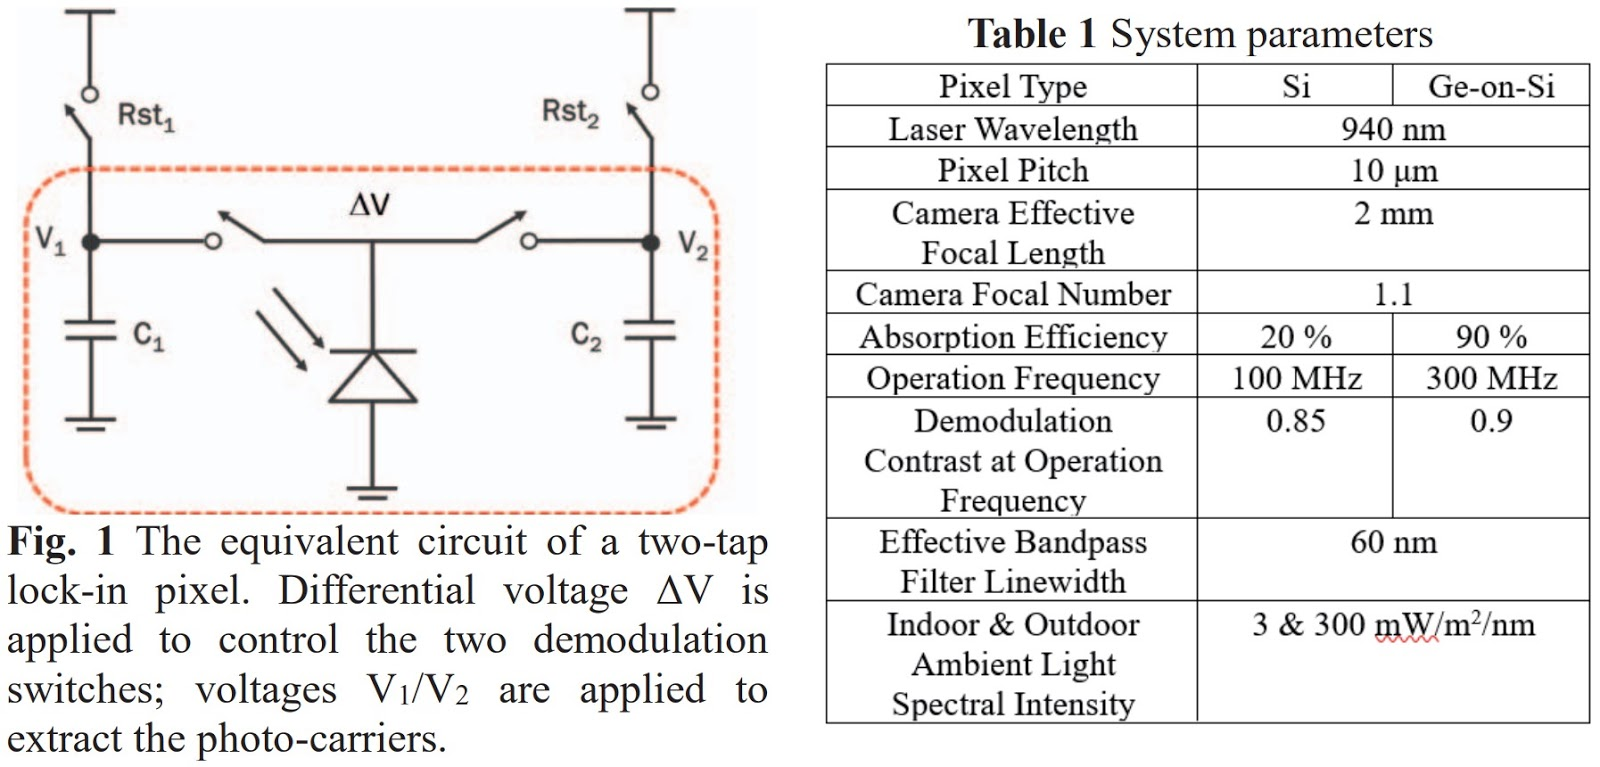 Image Sensors World December 2018 Modifications Power Over Ethernet Poe 1 El Fon Blog The Measured Statistical Data Further Demonstrate Technology Yields Good Within Wafer And To Uniformities That May Be Ready For Mass